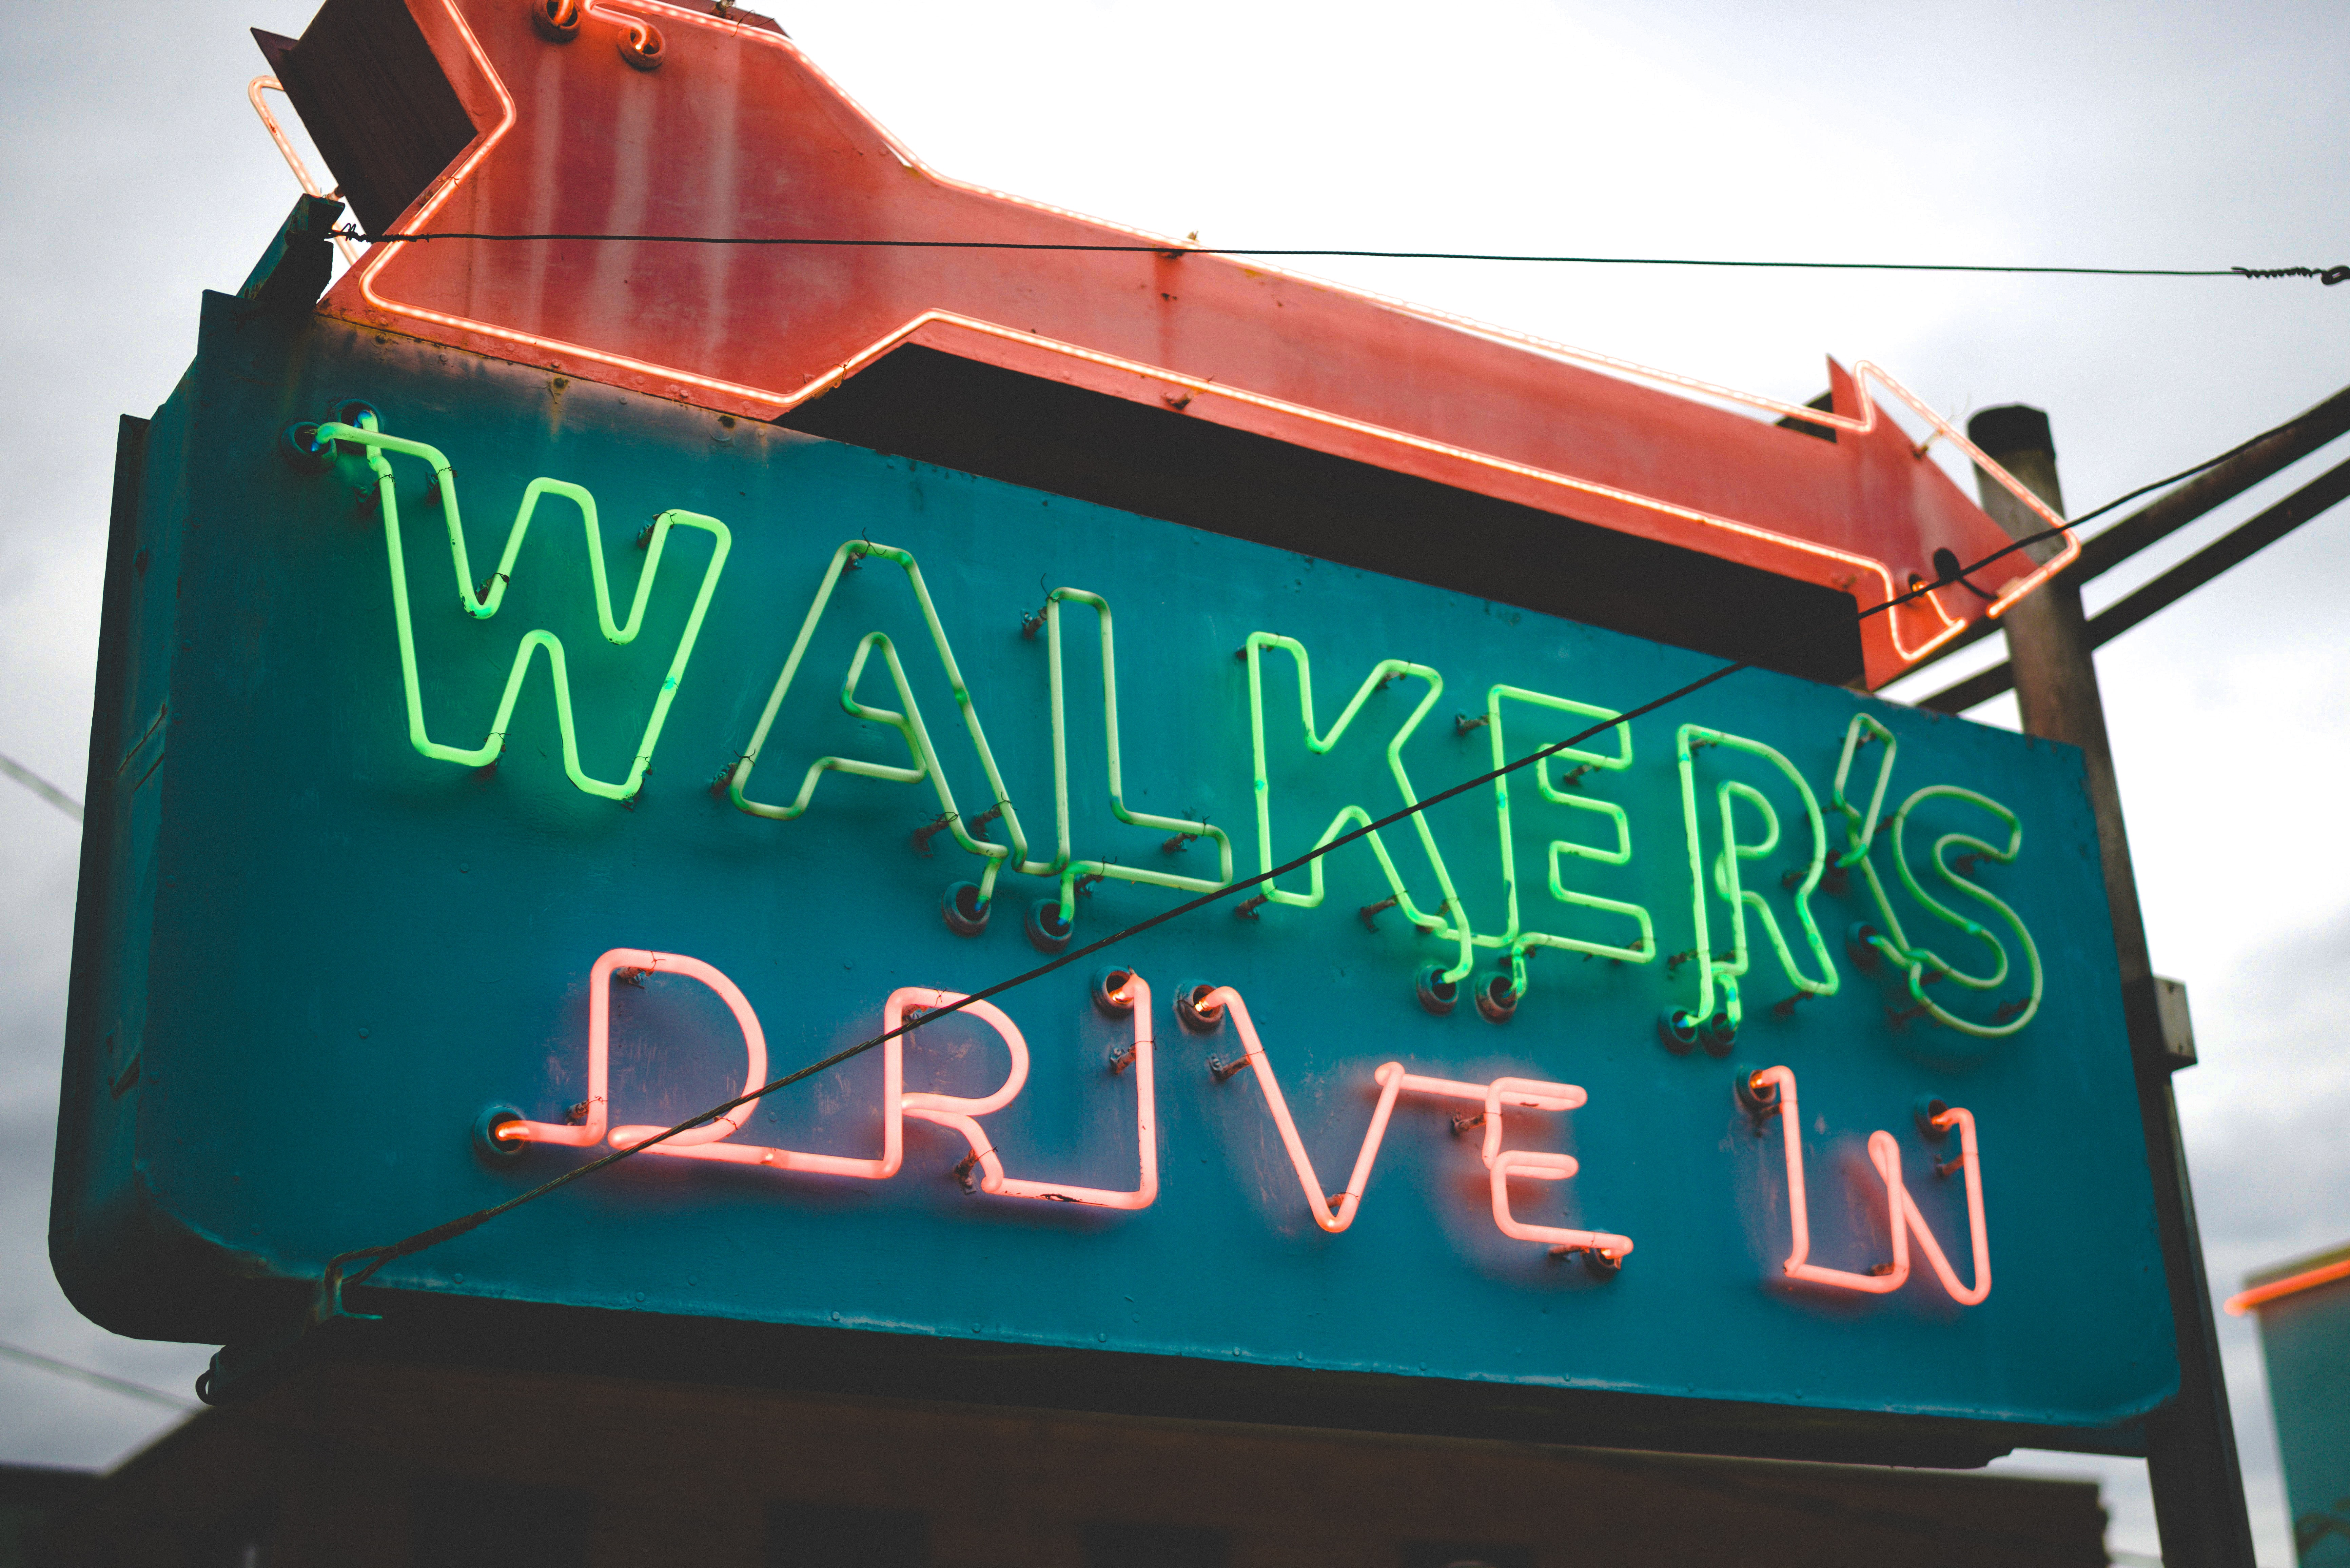 Walker's drive in neon signage